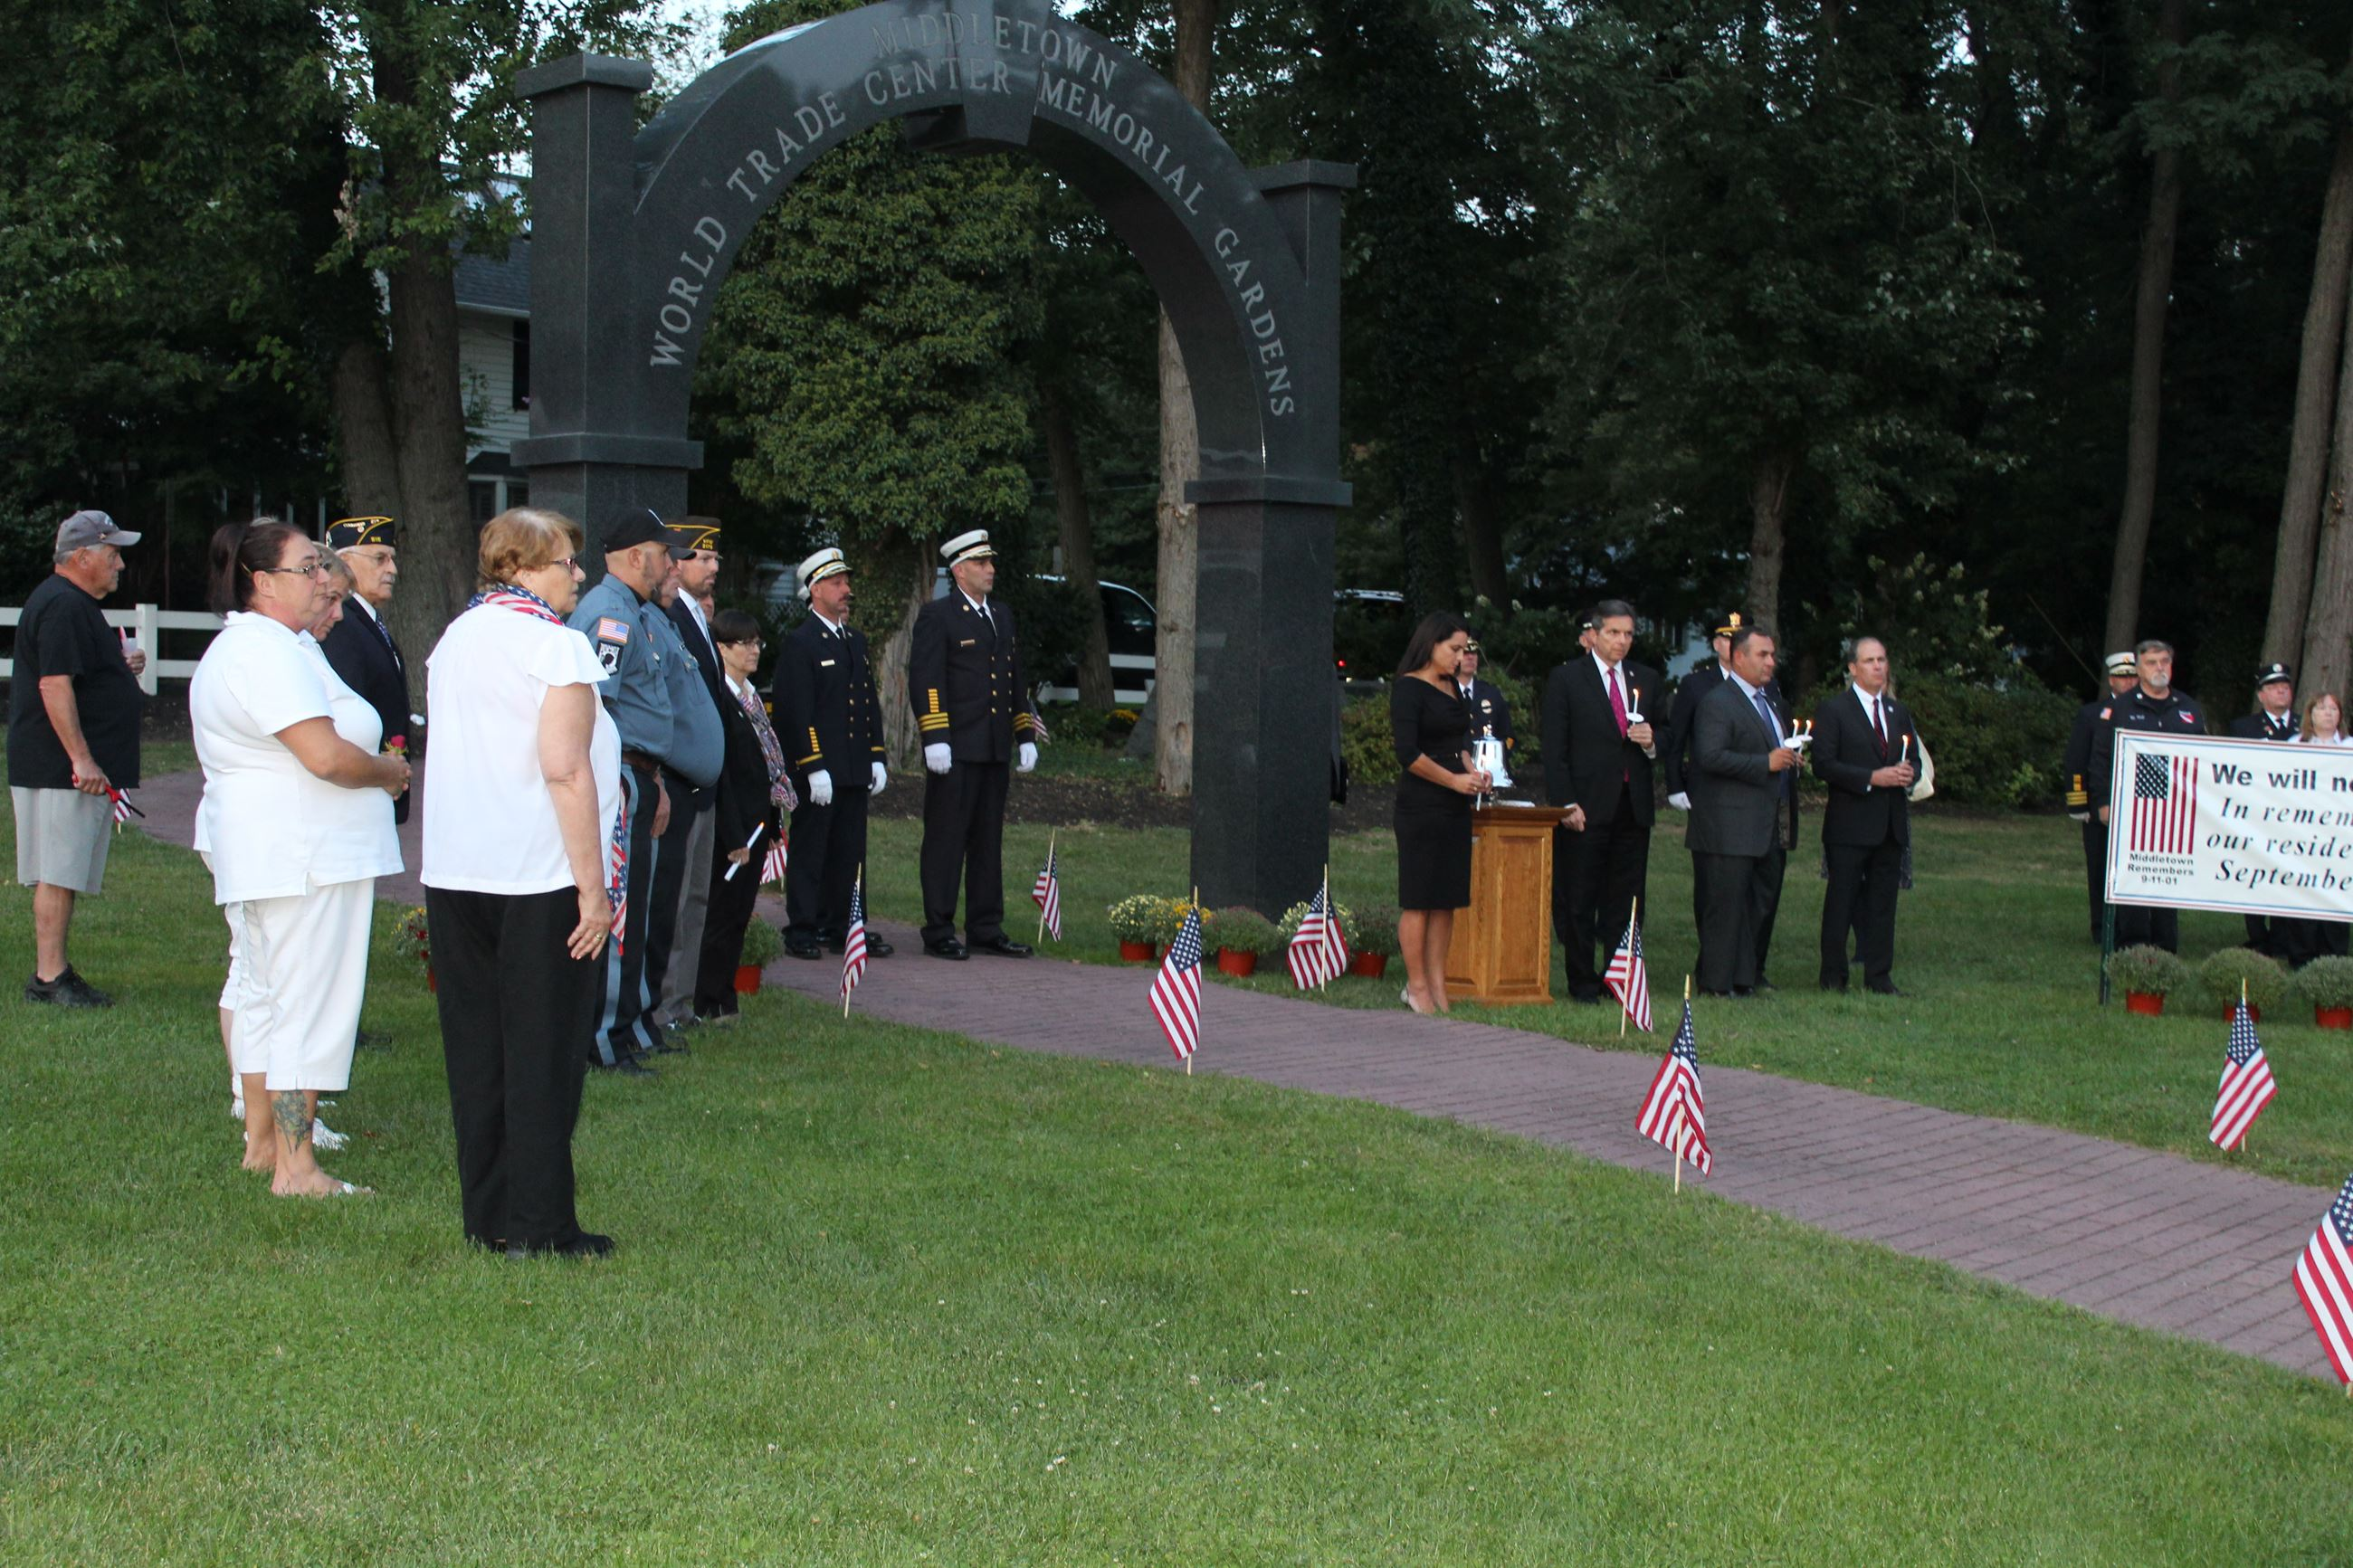 Township Committee at Candelit 9/11 Tribute